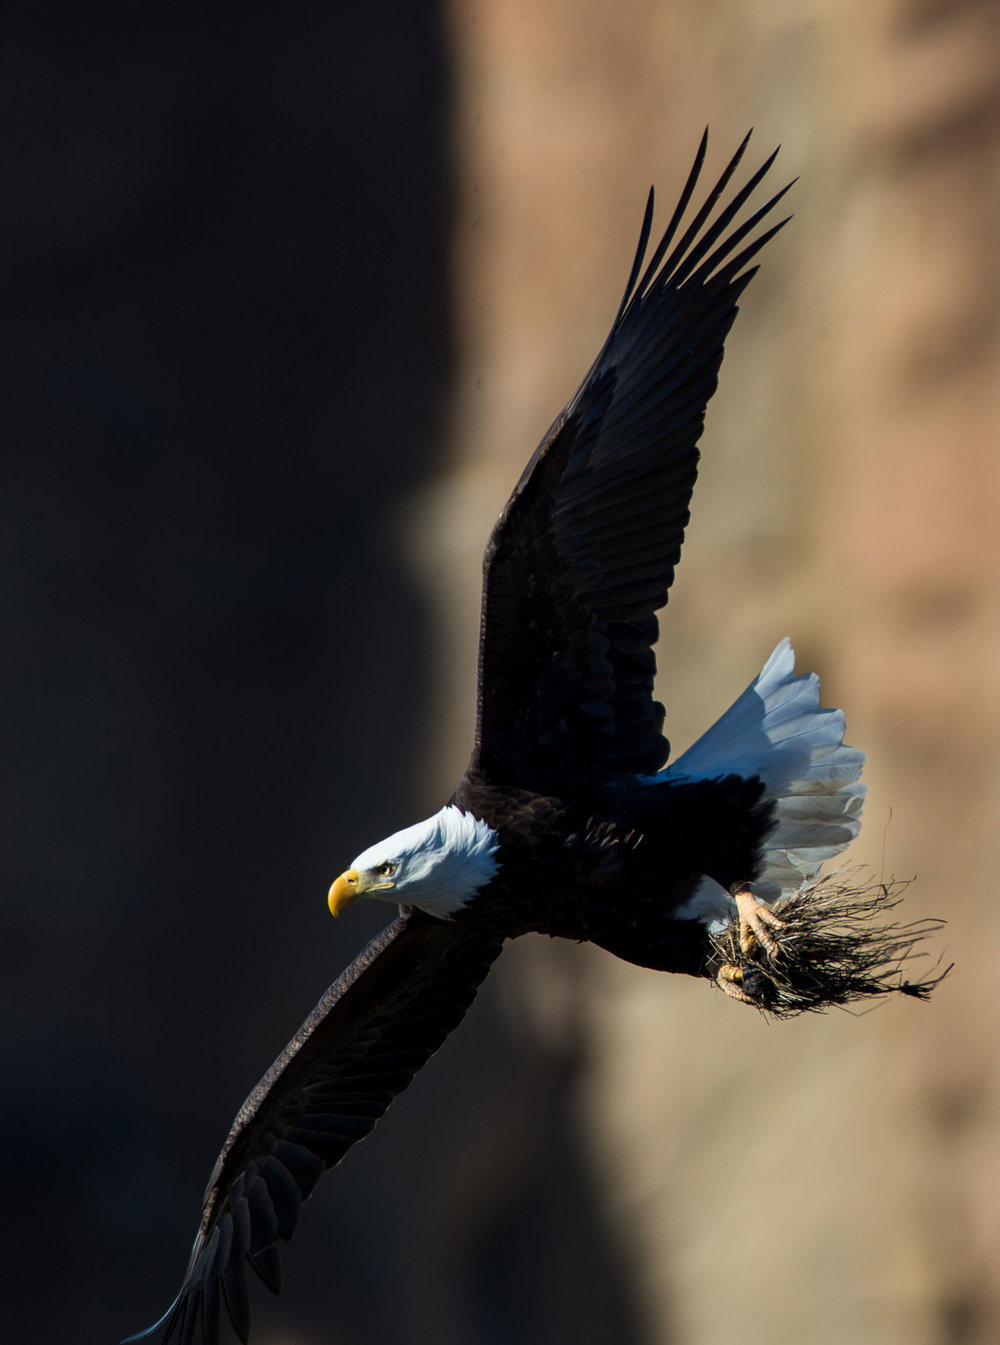 Bald eagle gathering nesting materials. Photo courtesy of Jack Wills.